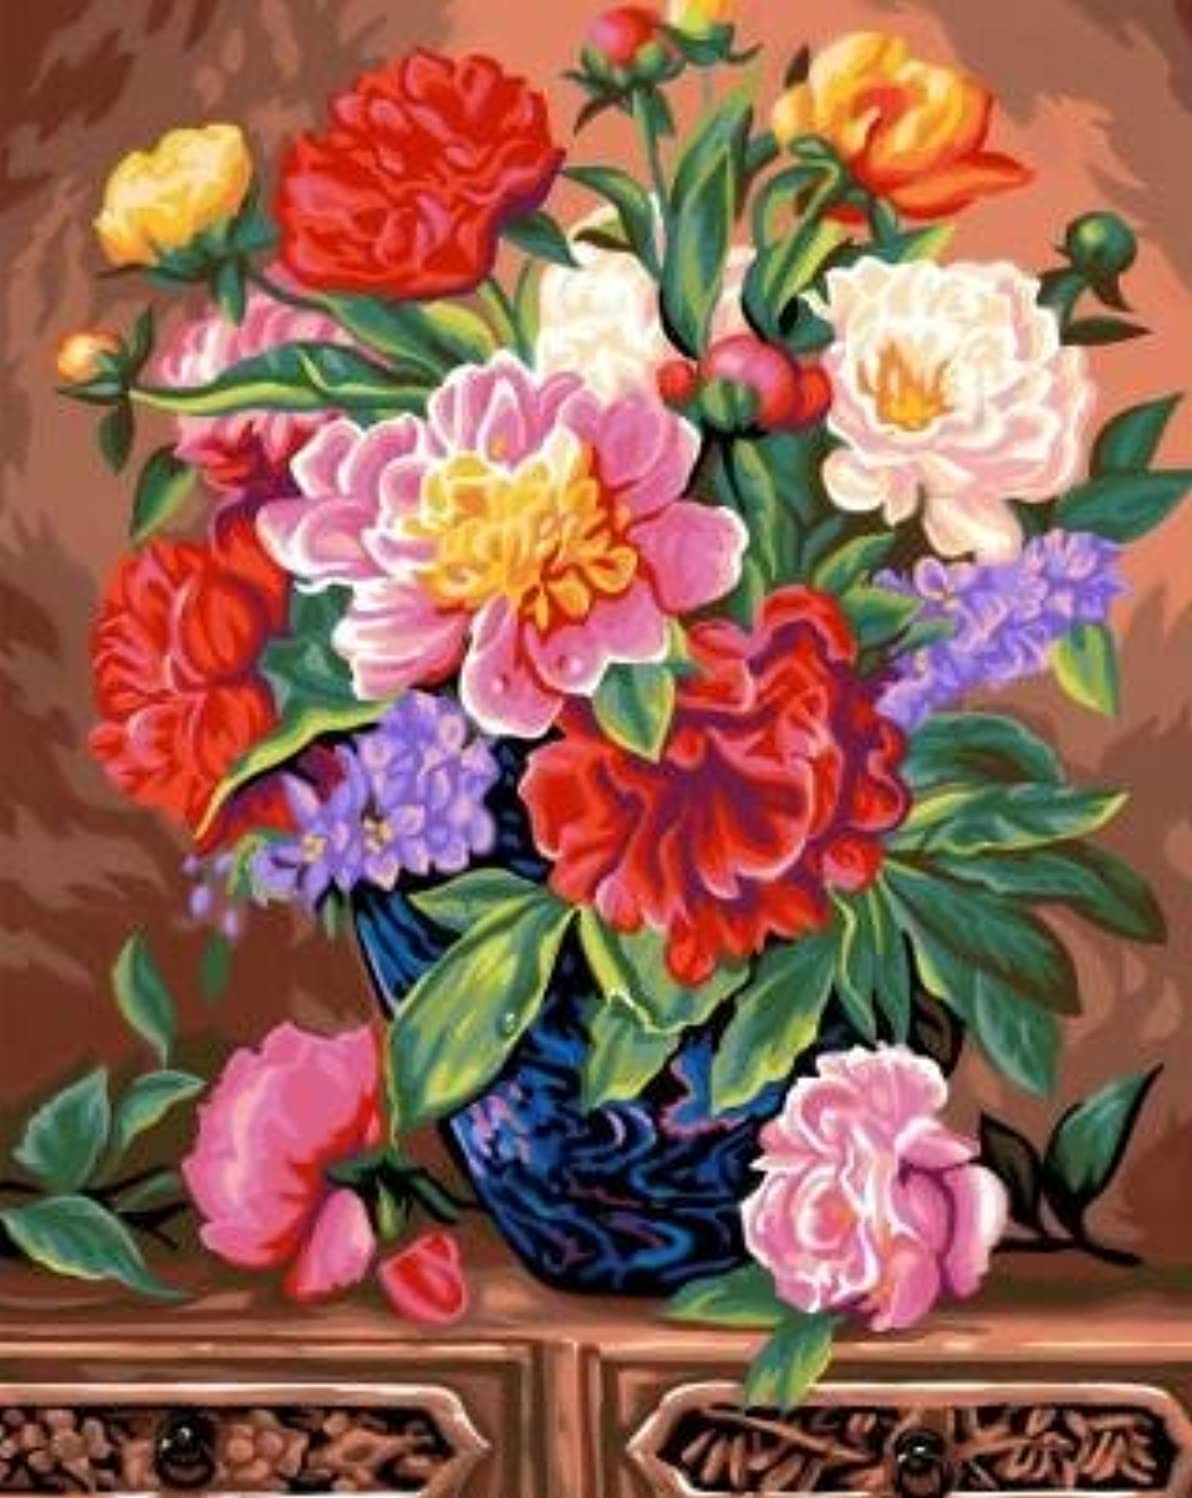 Ksg Crafts Bouquet Paint-By-Number Kit